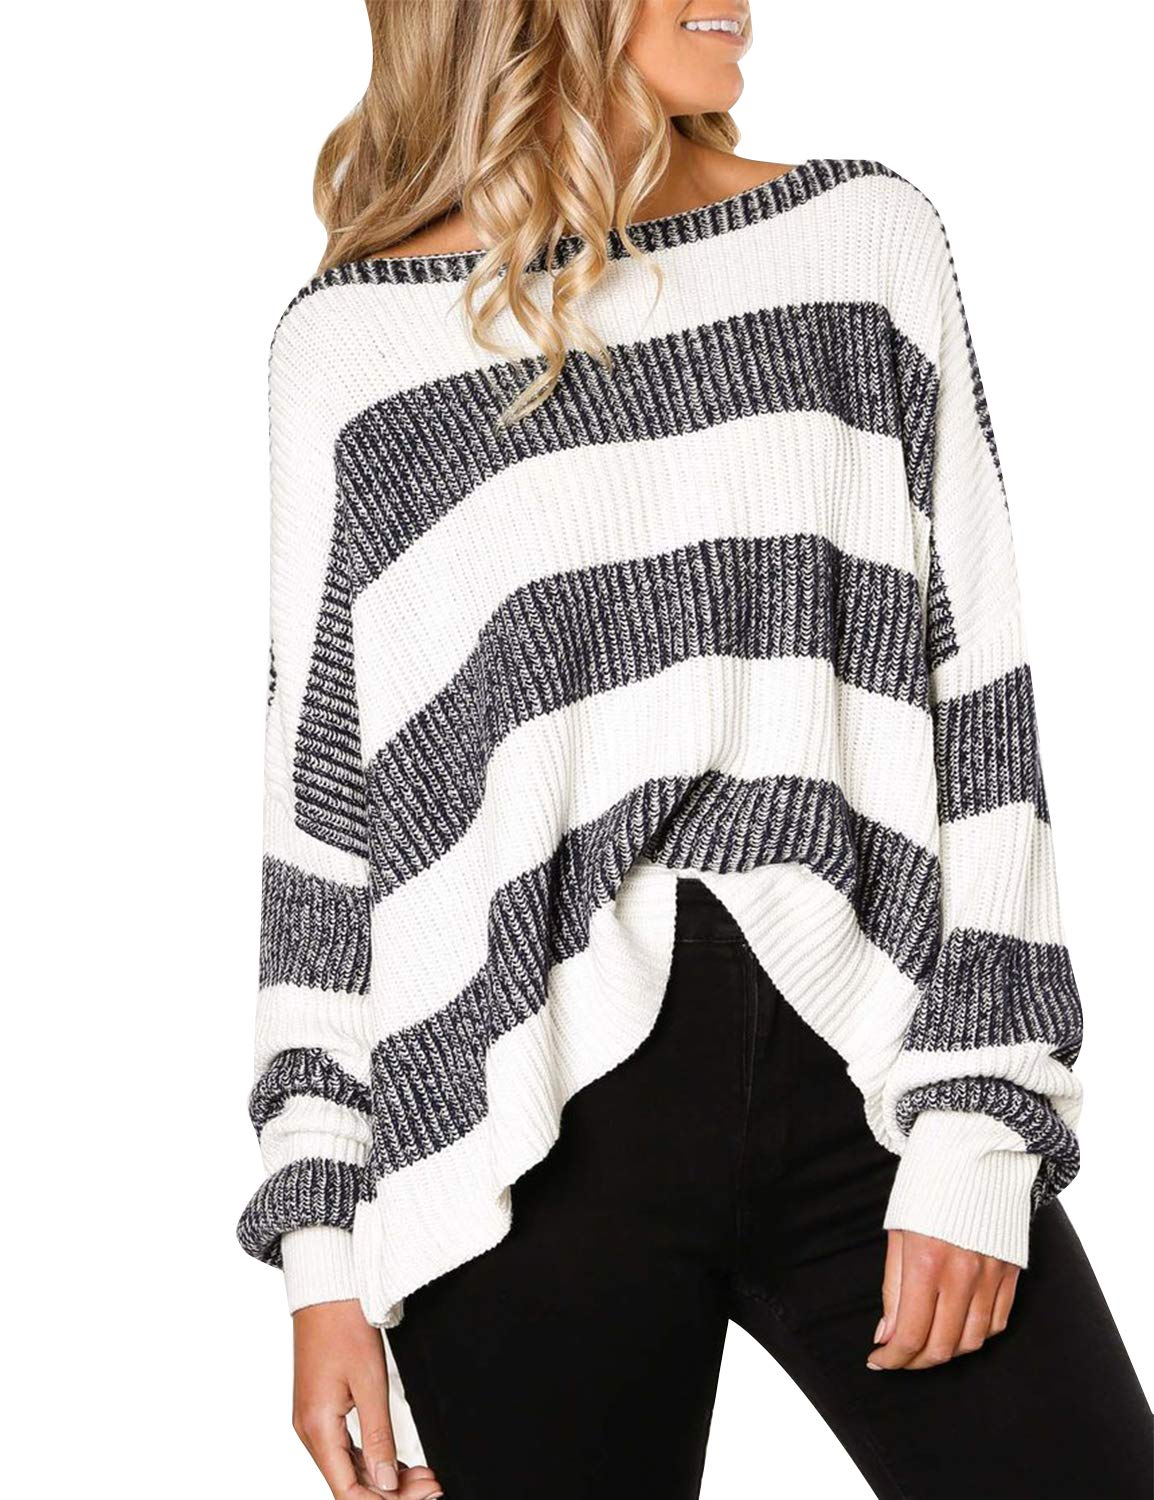 BMJL Women's Off The Shoulder Top Long Sleeve Loose Sweater Striped Oversized Pullover Blue